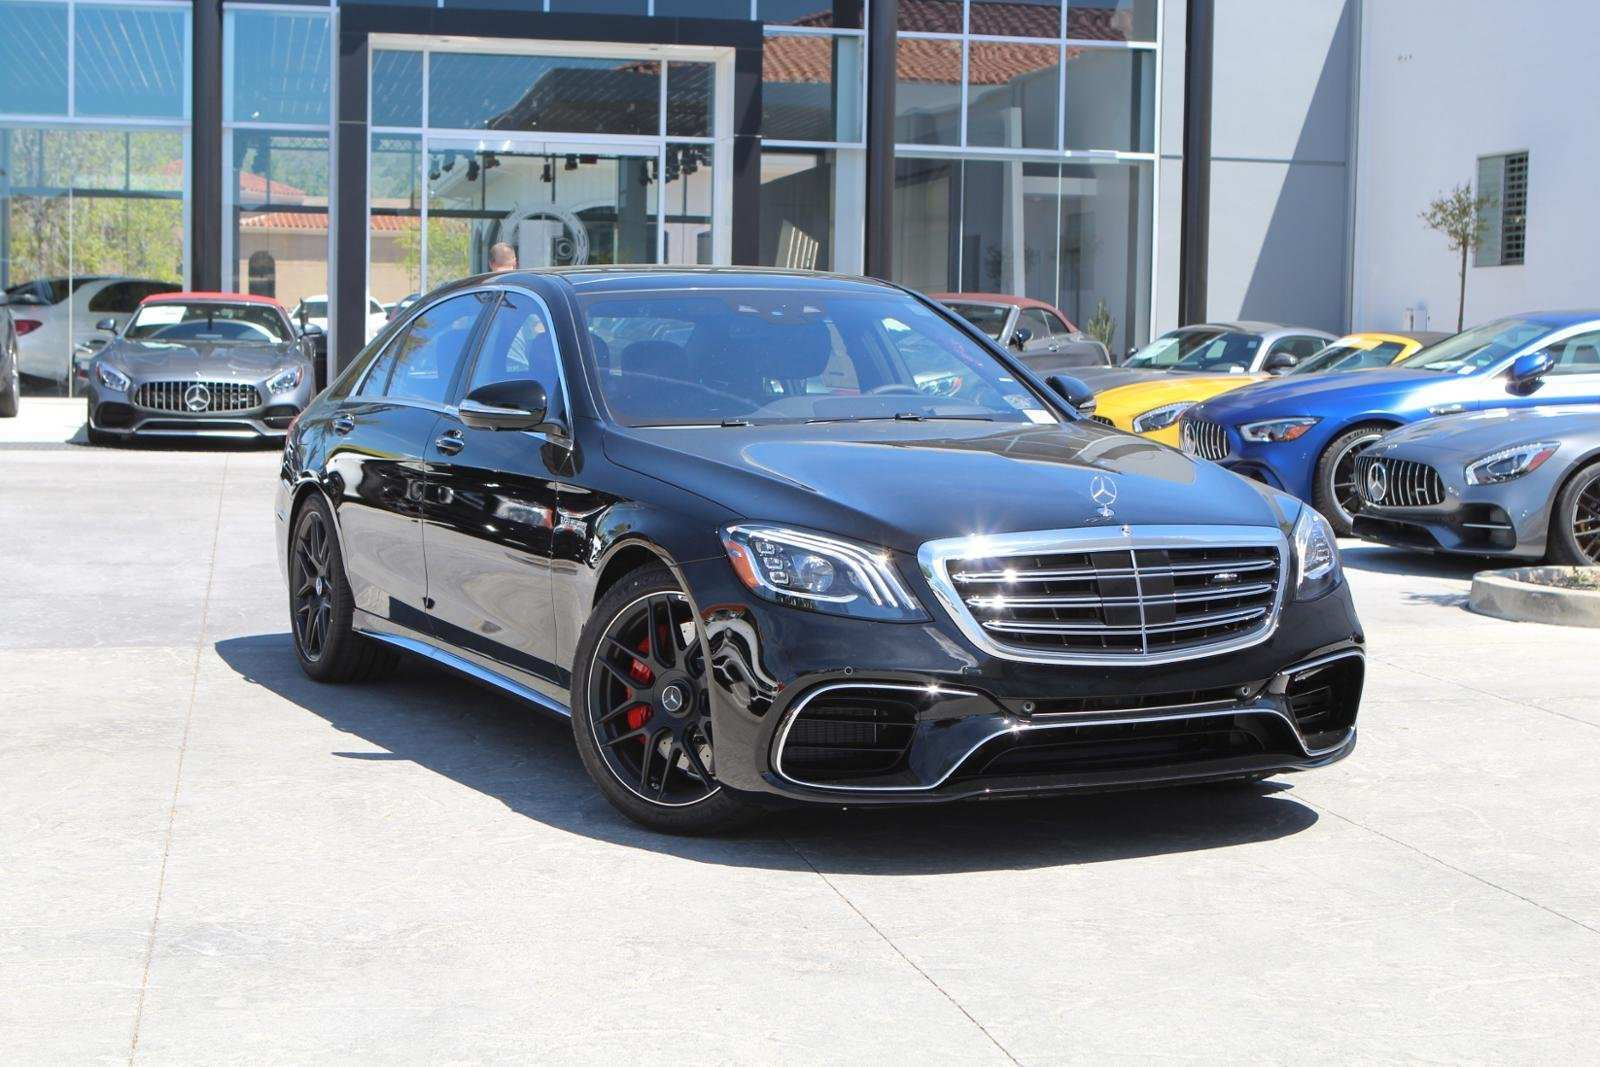 33 New Mercedes S Class 2019 Redesign And Review